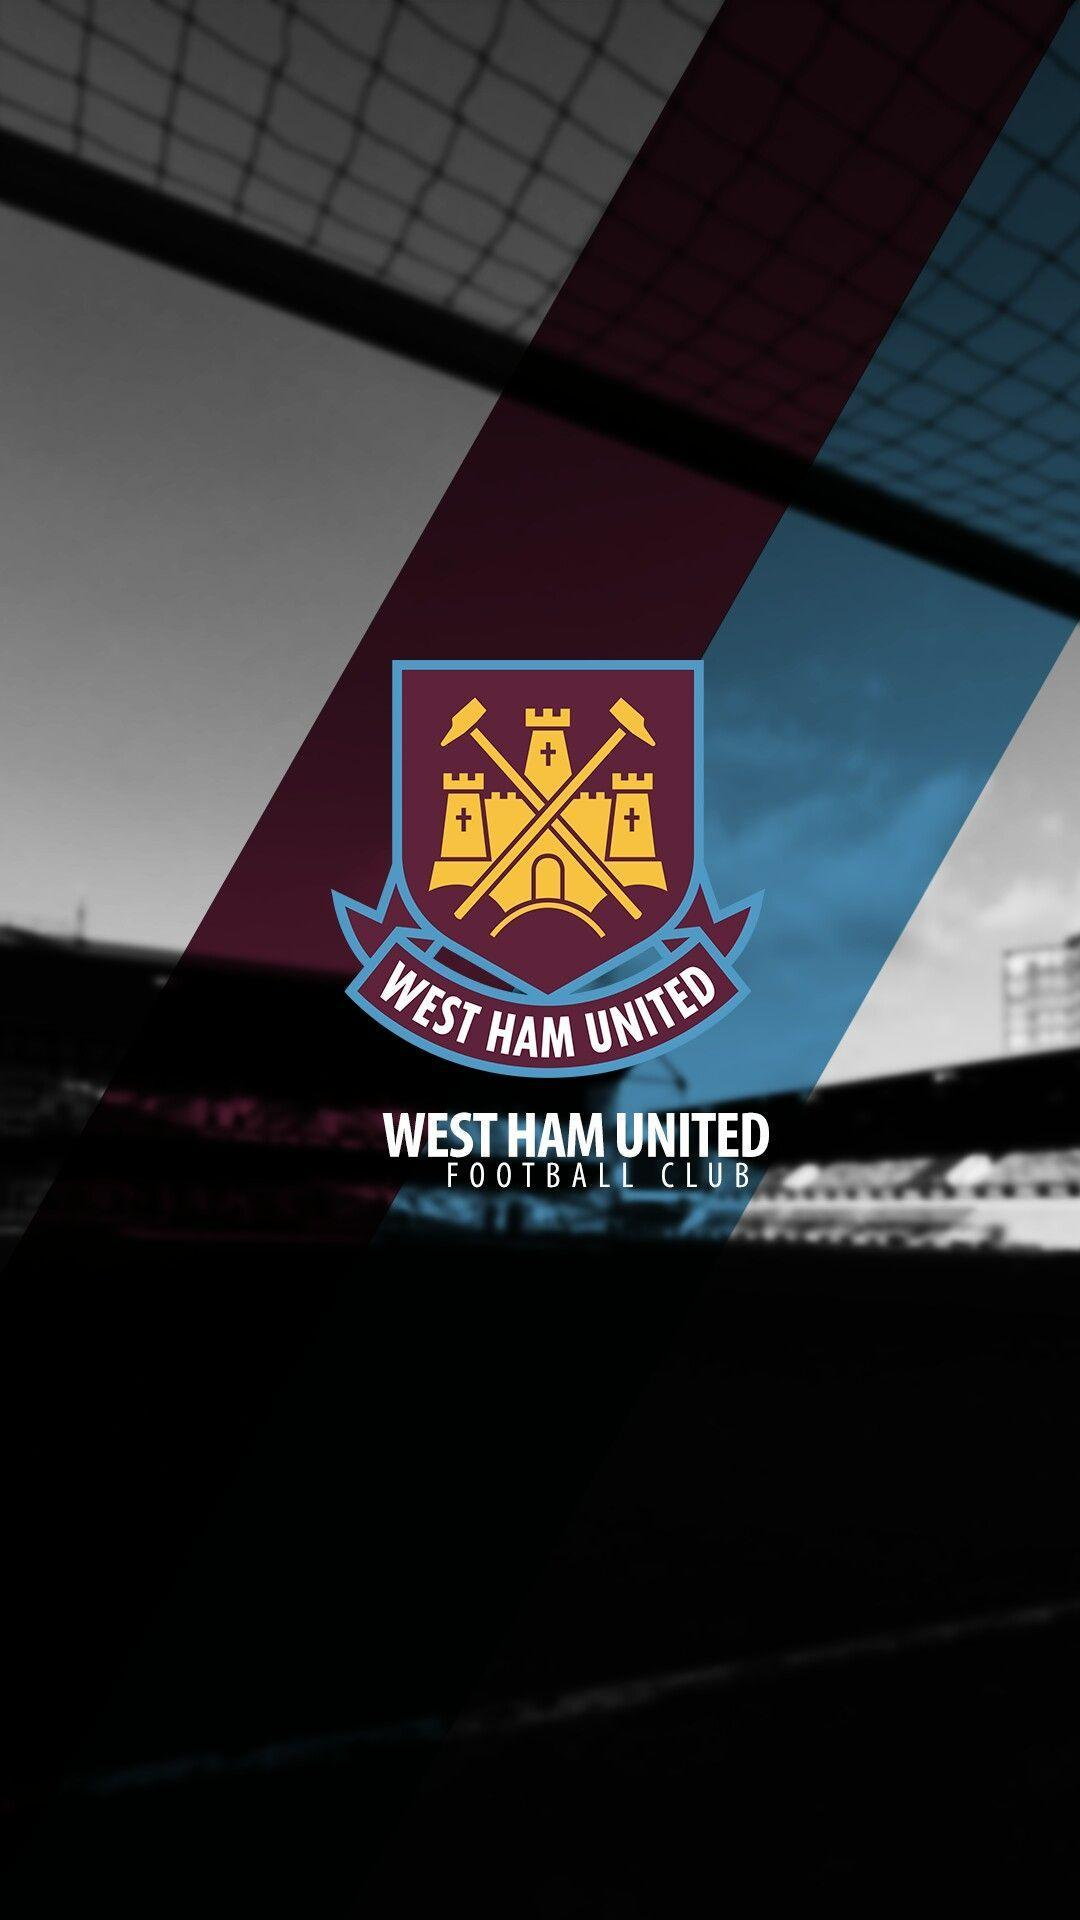 Adidas Wallpaper Iphone 7 West Ham United Wallpapers Wallpaper Cave